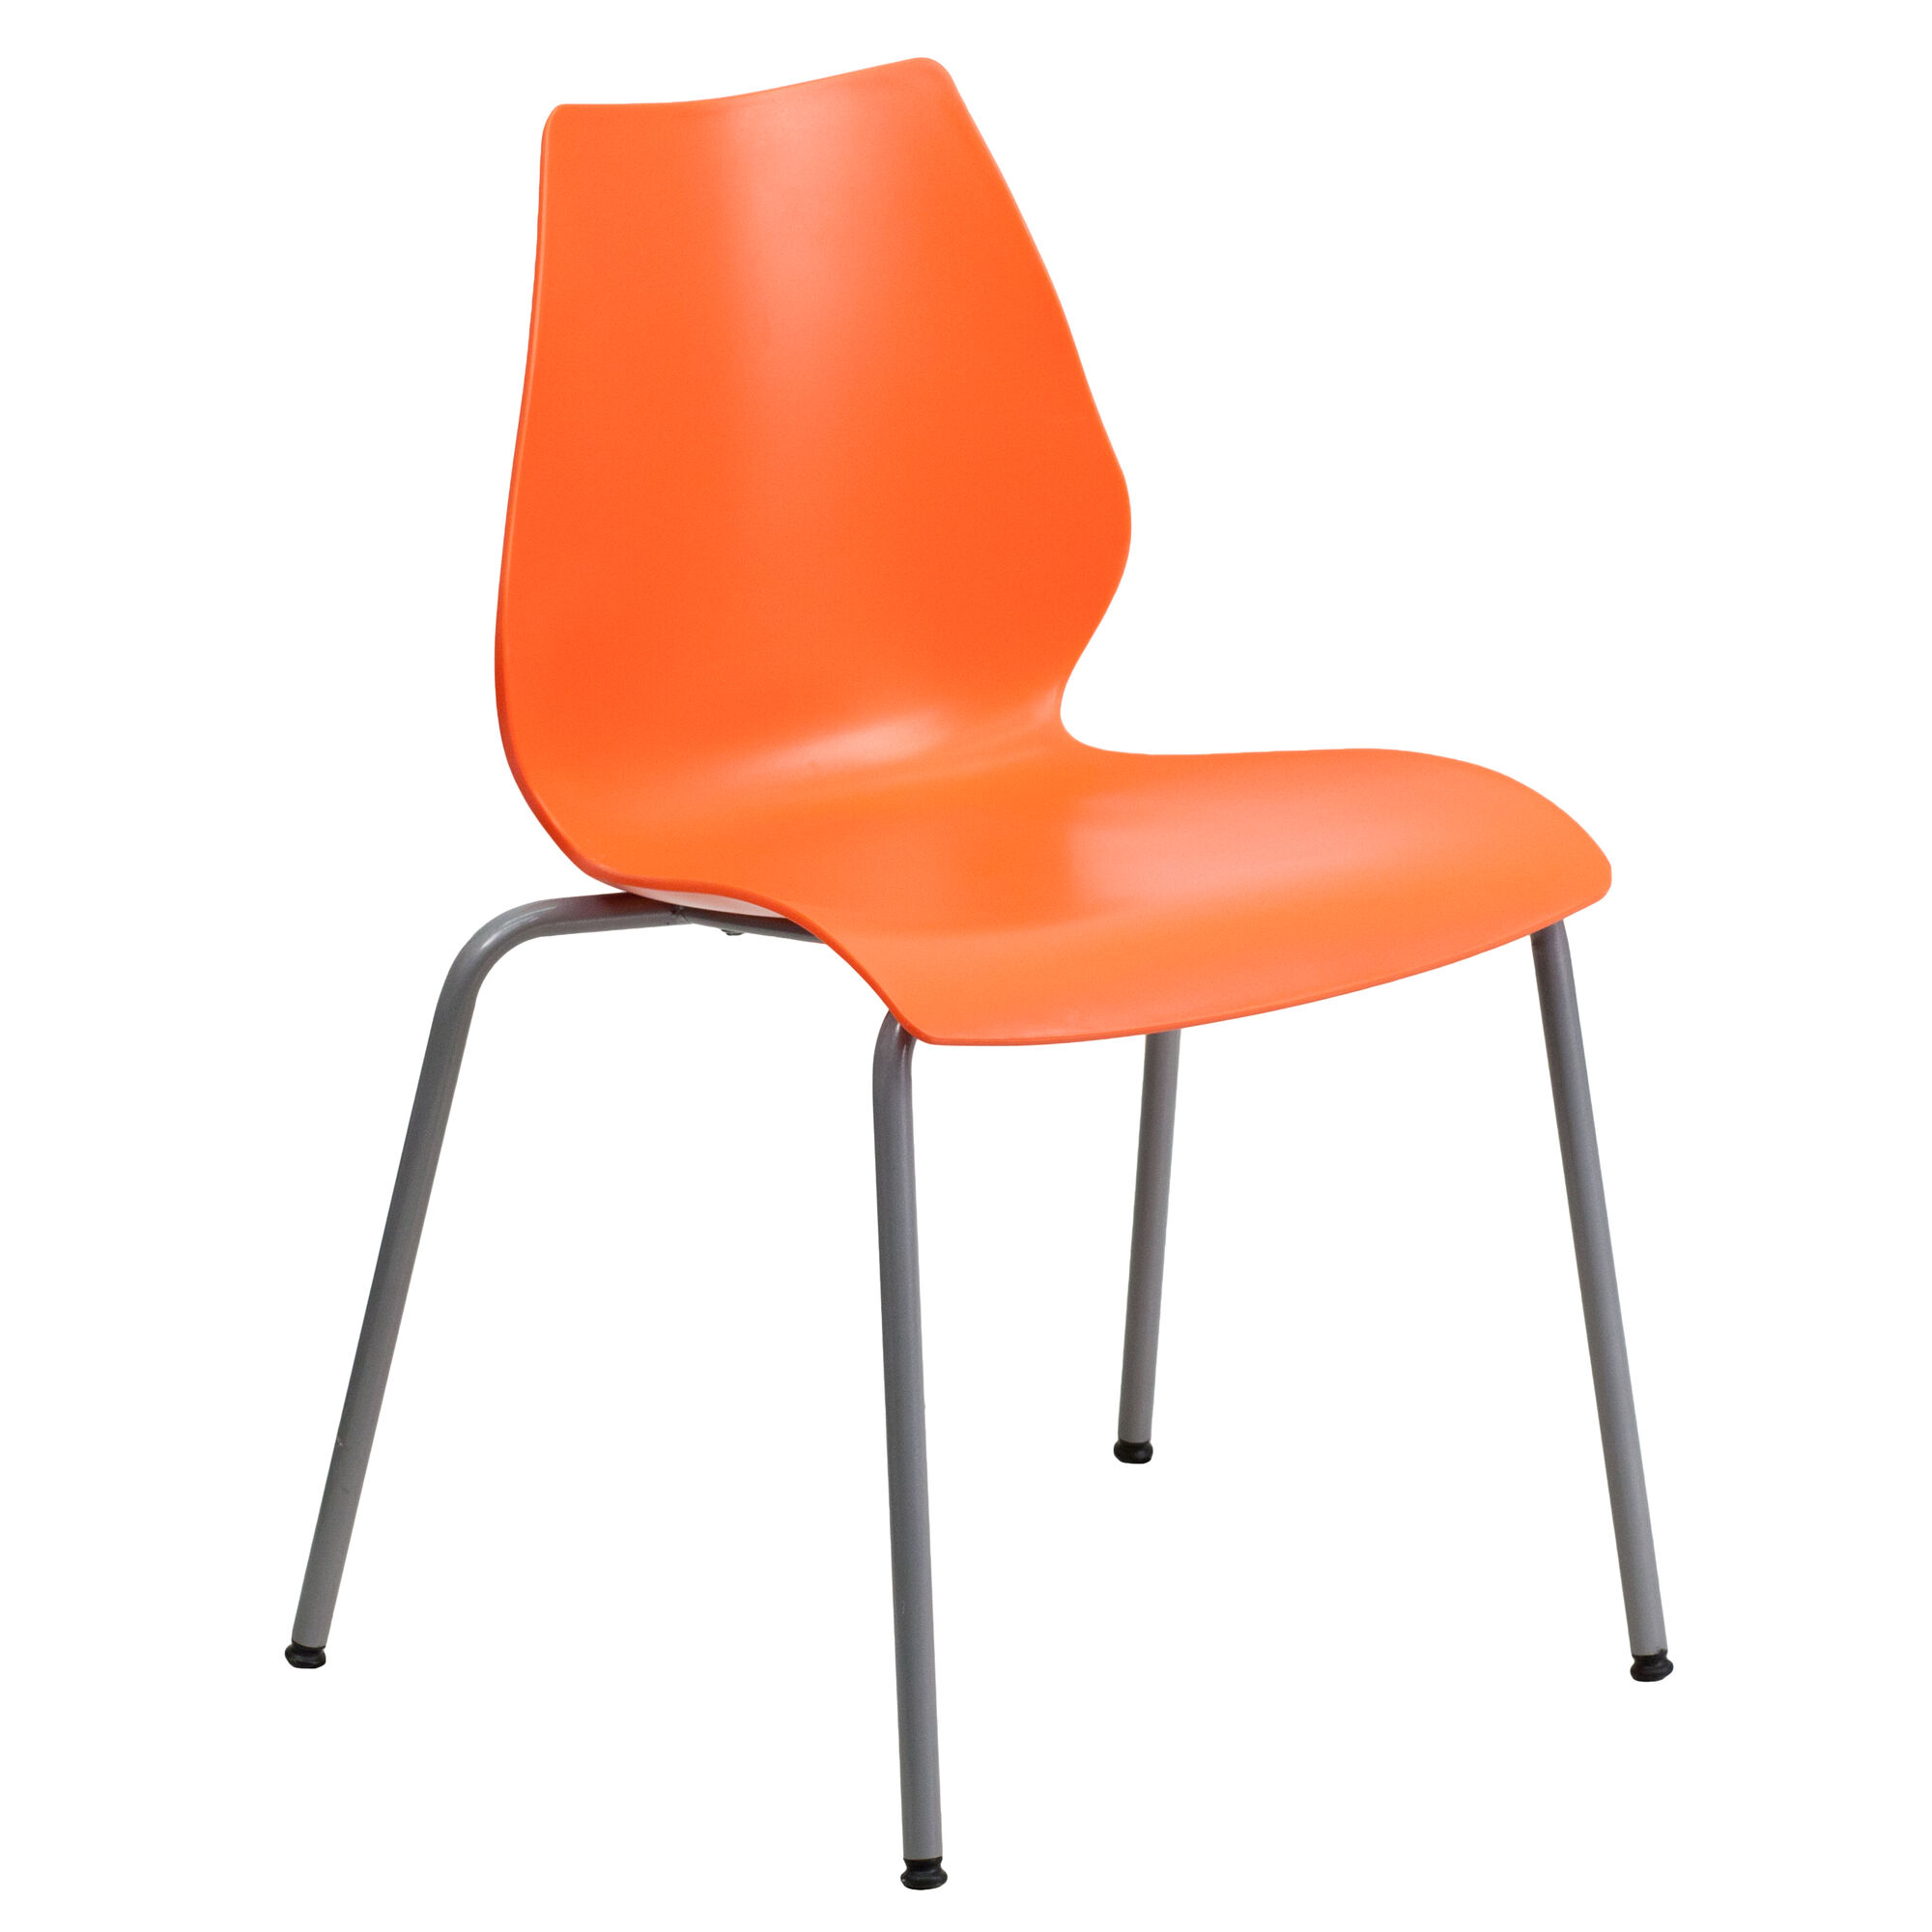 Brilliant Hercules Series 770 Lb Capacity Orange Stack Chair With Lumbar Support And Silver Frame Bralicious Painted Fabric Chair Ideas Braliciousco